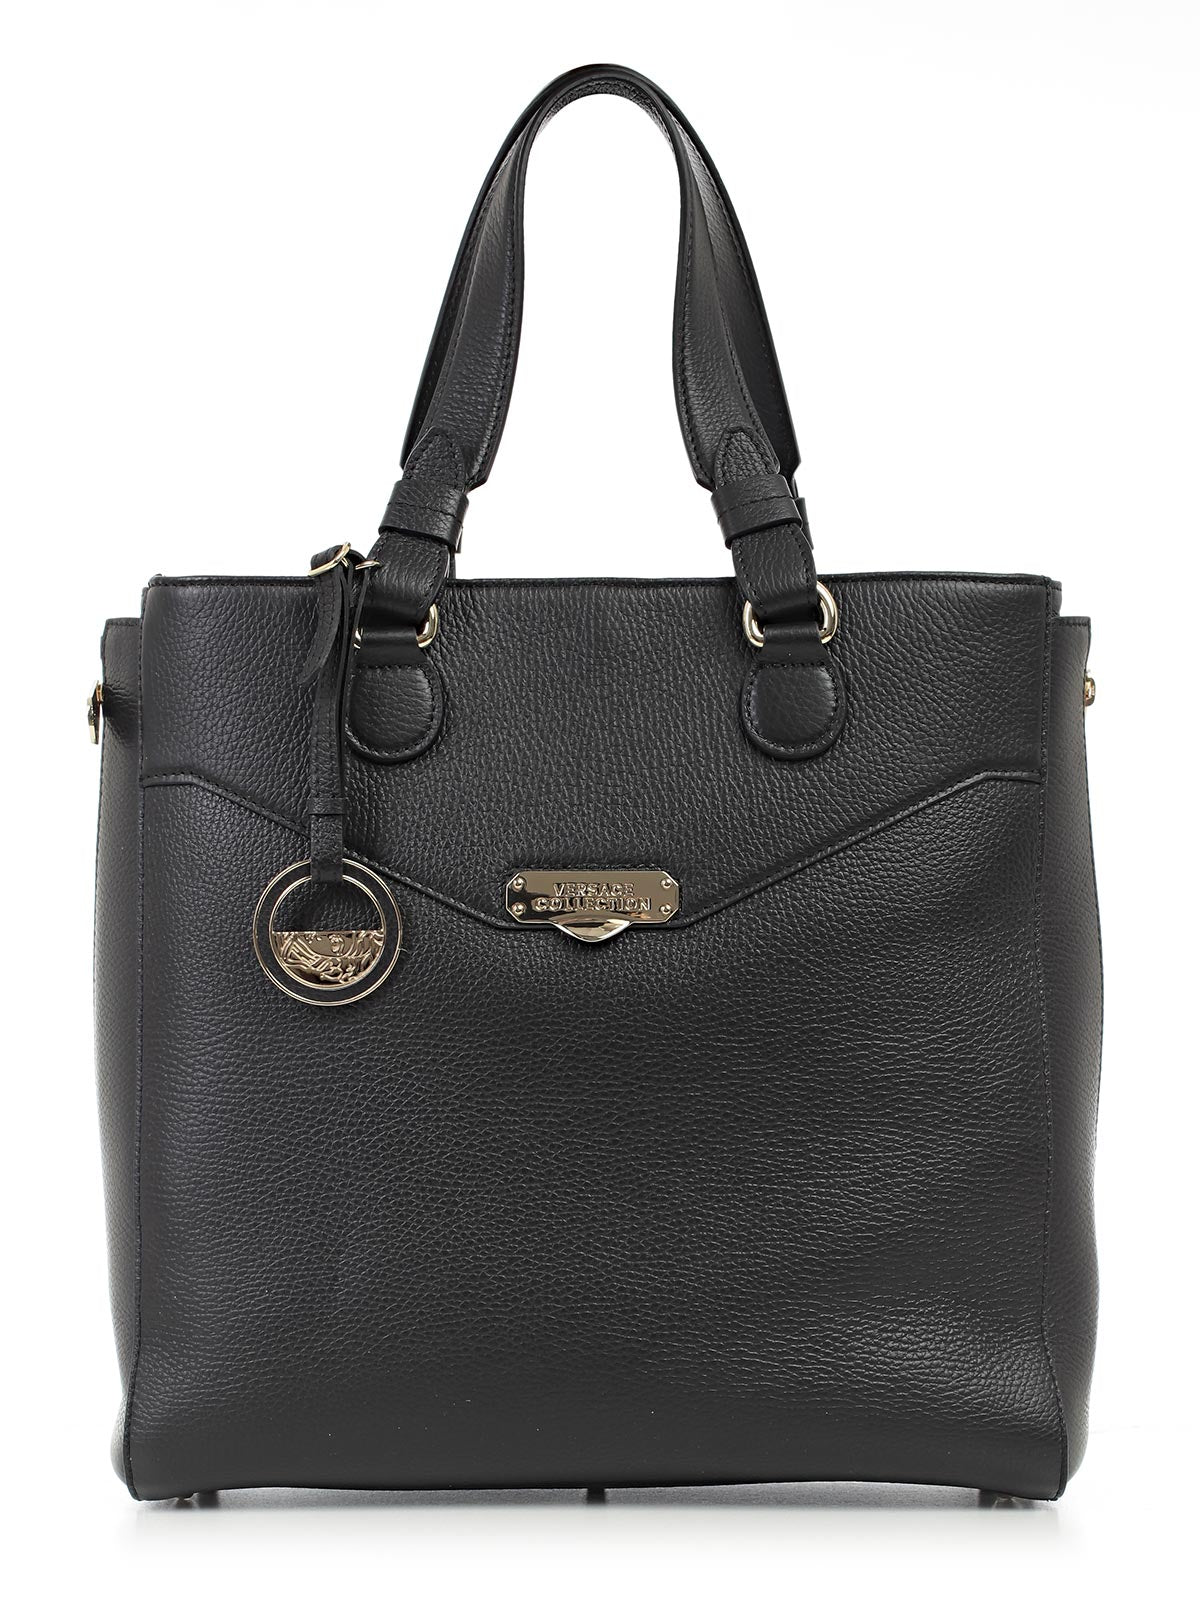 VERSACE COLLECTION SHOPPING TOTE